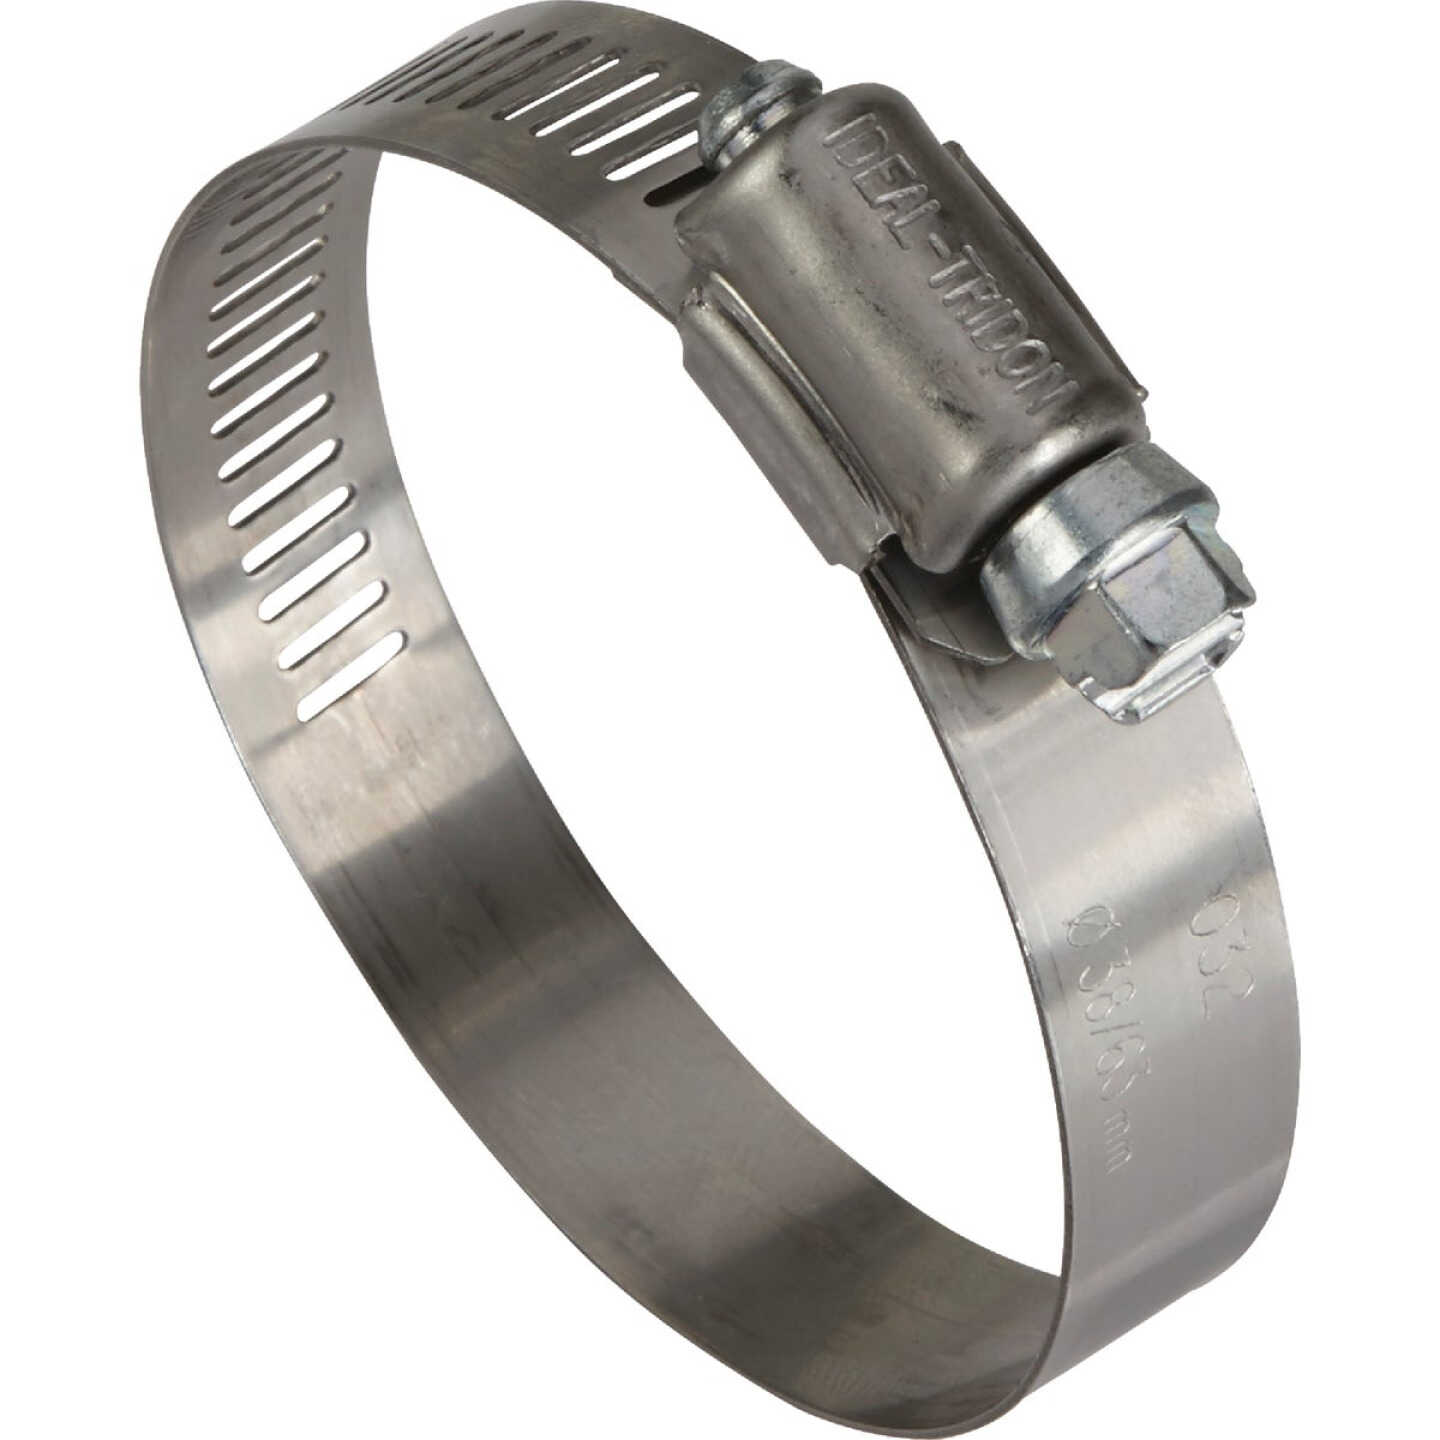 Ideal 1-1/2 In. - 2-1/2 In. 57 Stainless Steel Hose Clamp with Zinc-Plated Carbon Steel Screw Image 1